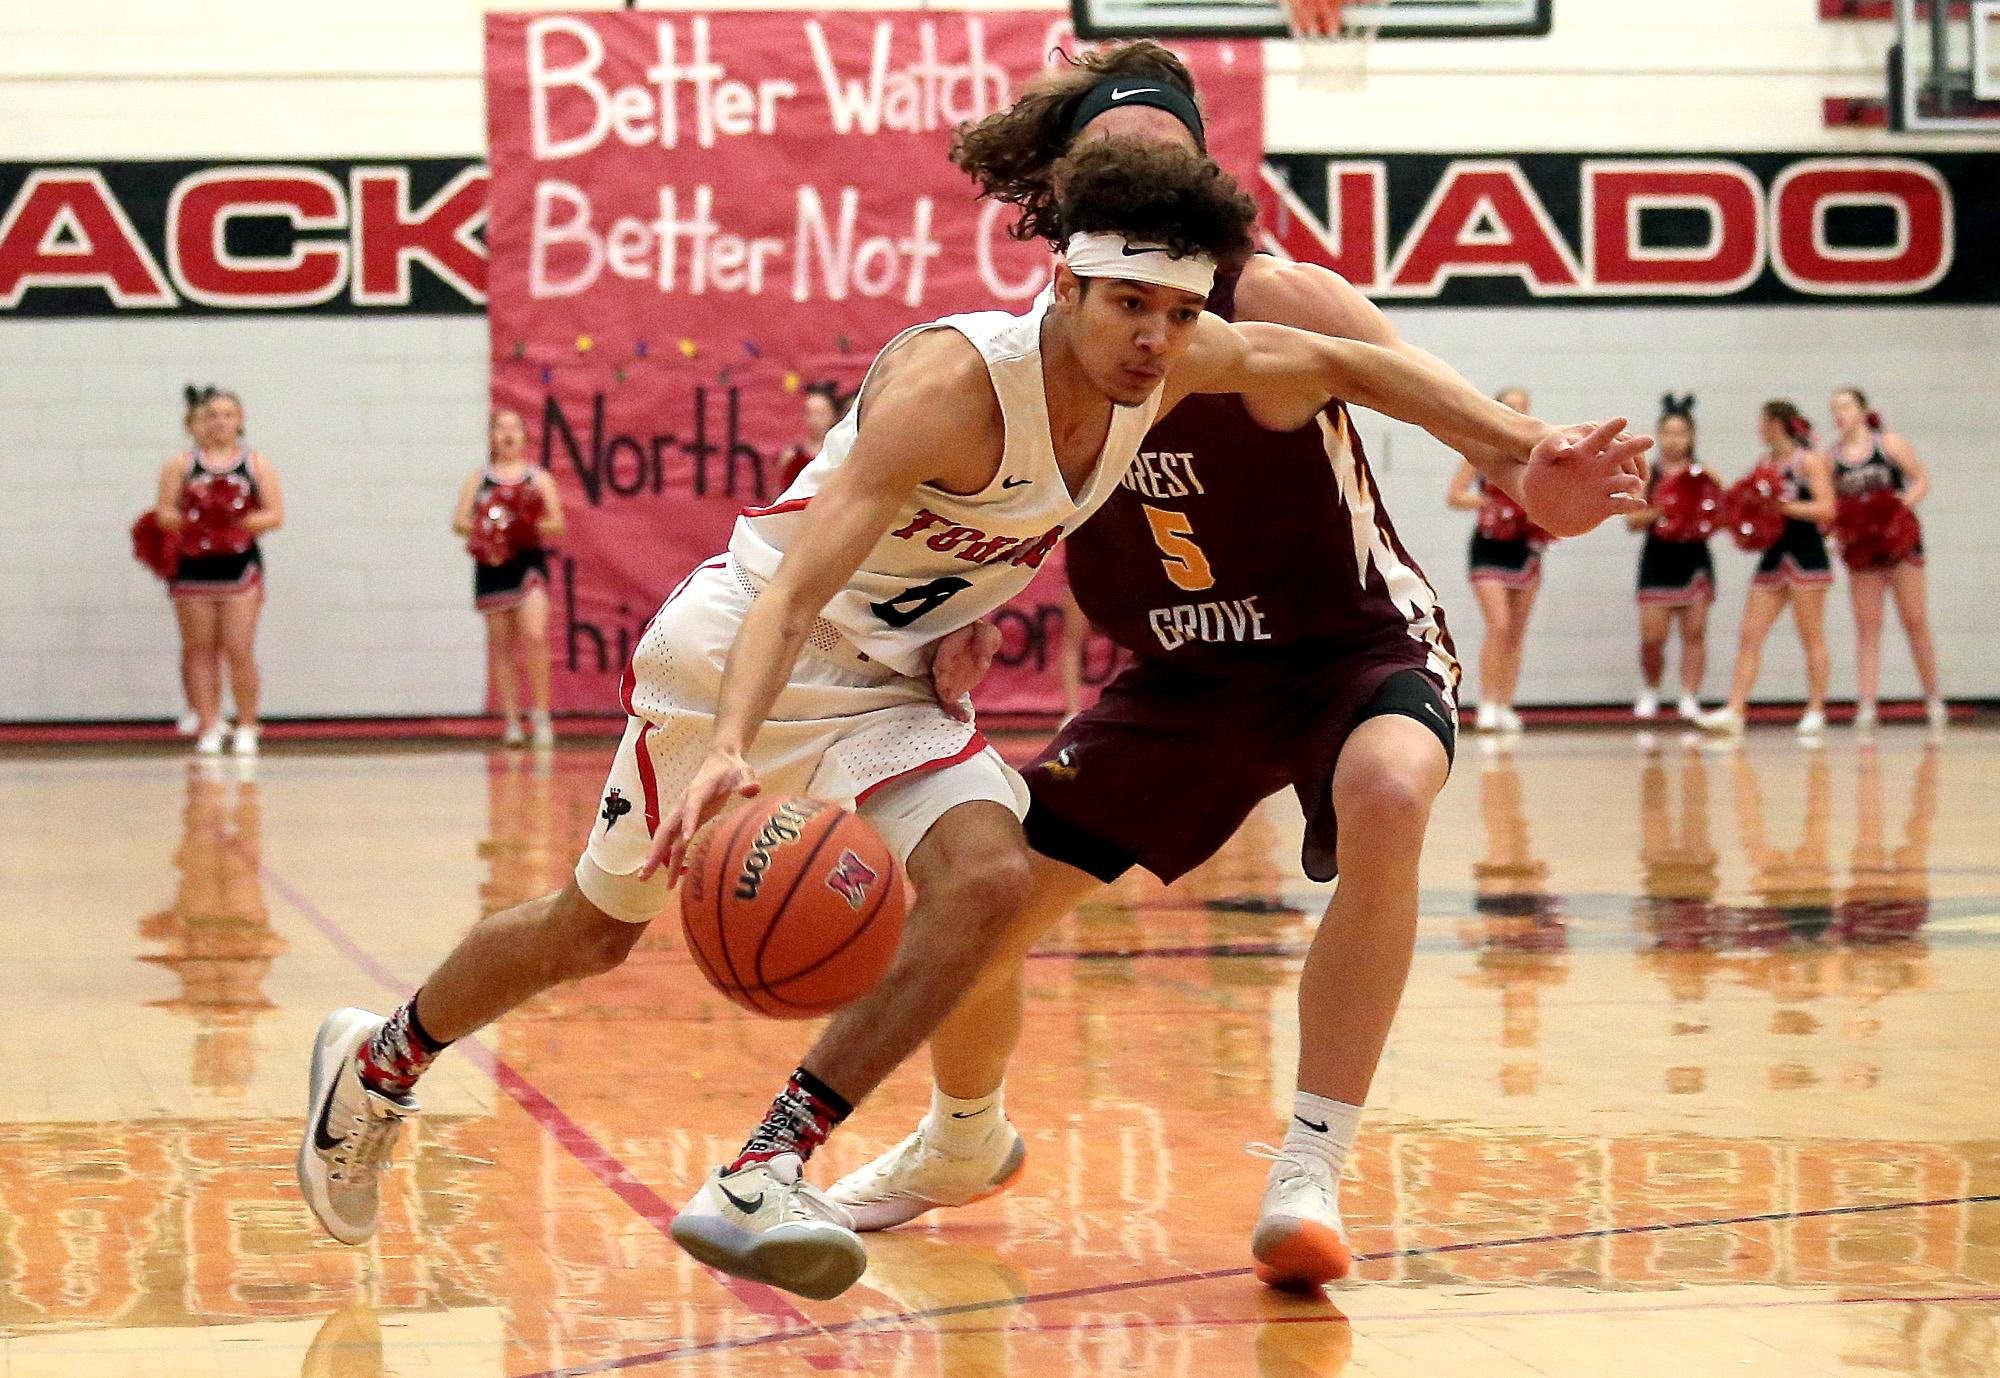 North Medford senior Darrius Wells races past Forest Grove defender Eli Leto on the Opening night of the 2018 Abby's Holiday Classic at North Medford High on Thursday.(PHOTO BY:  LARRY STAUTH JR)